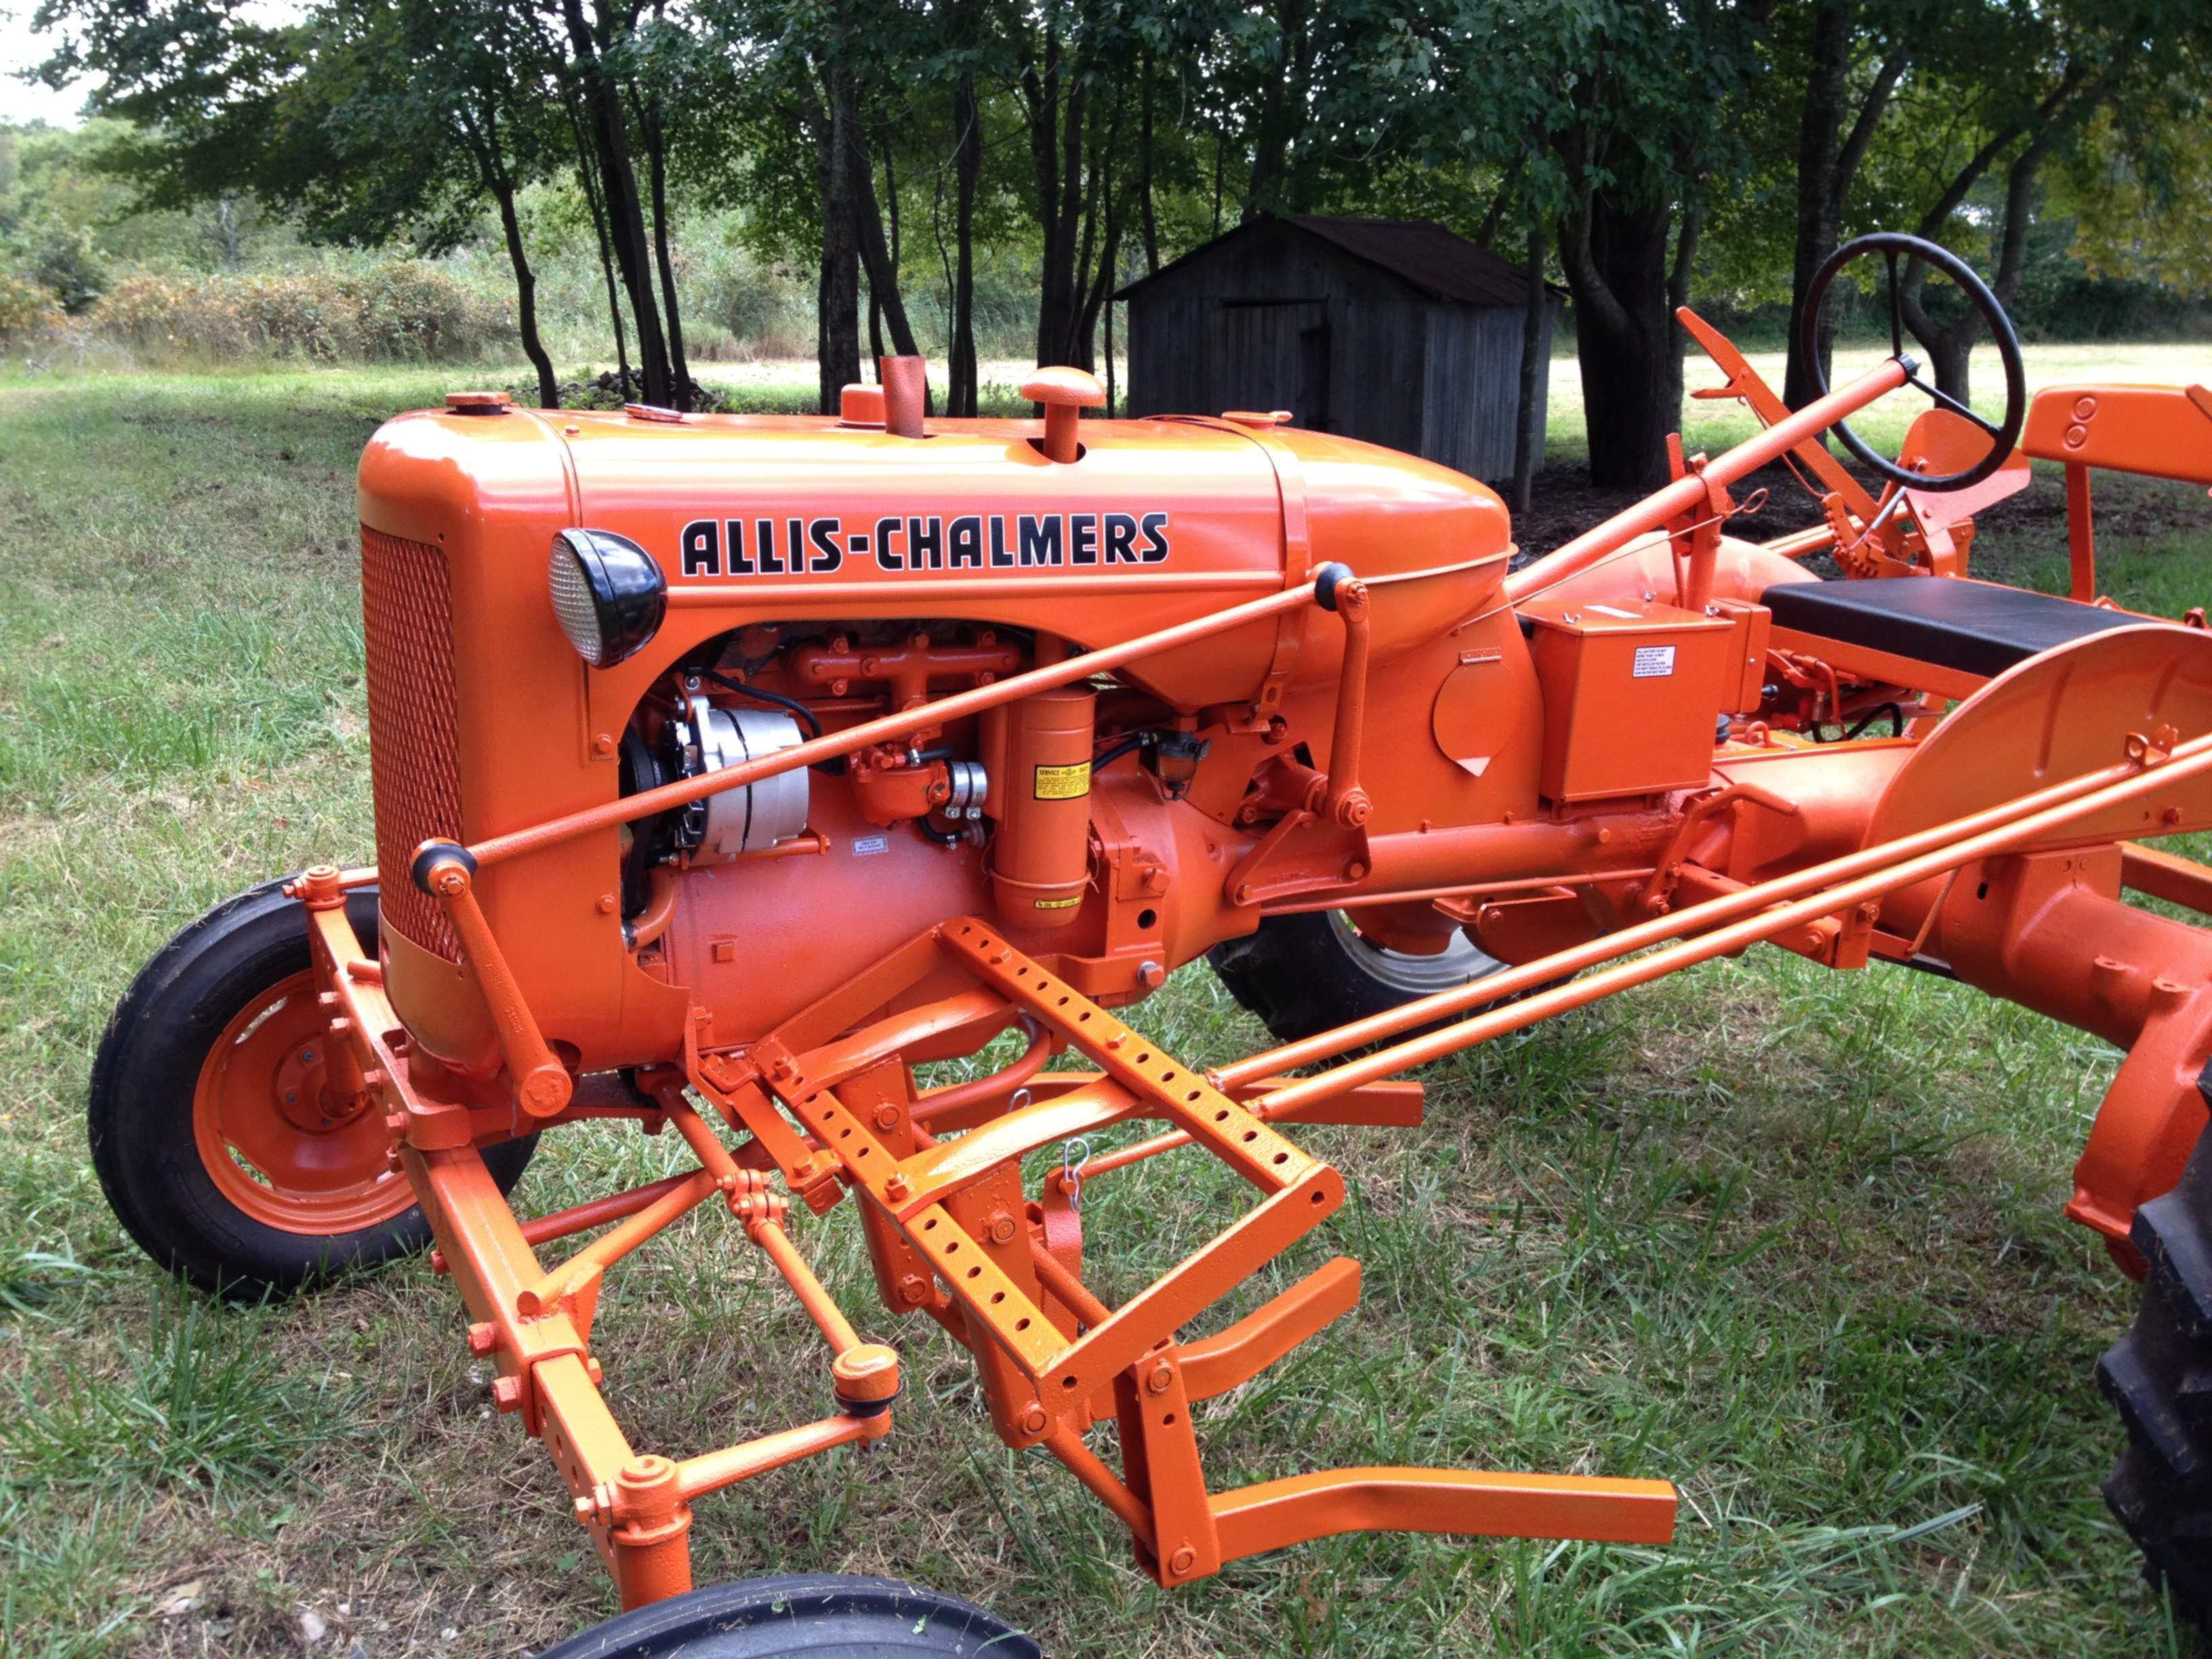 wiring diagram for allis chalmers wc wiring diagram for